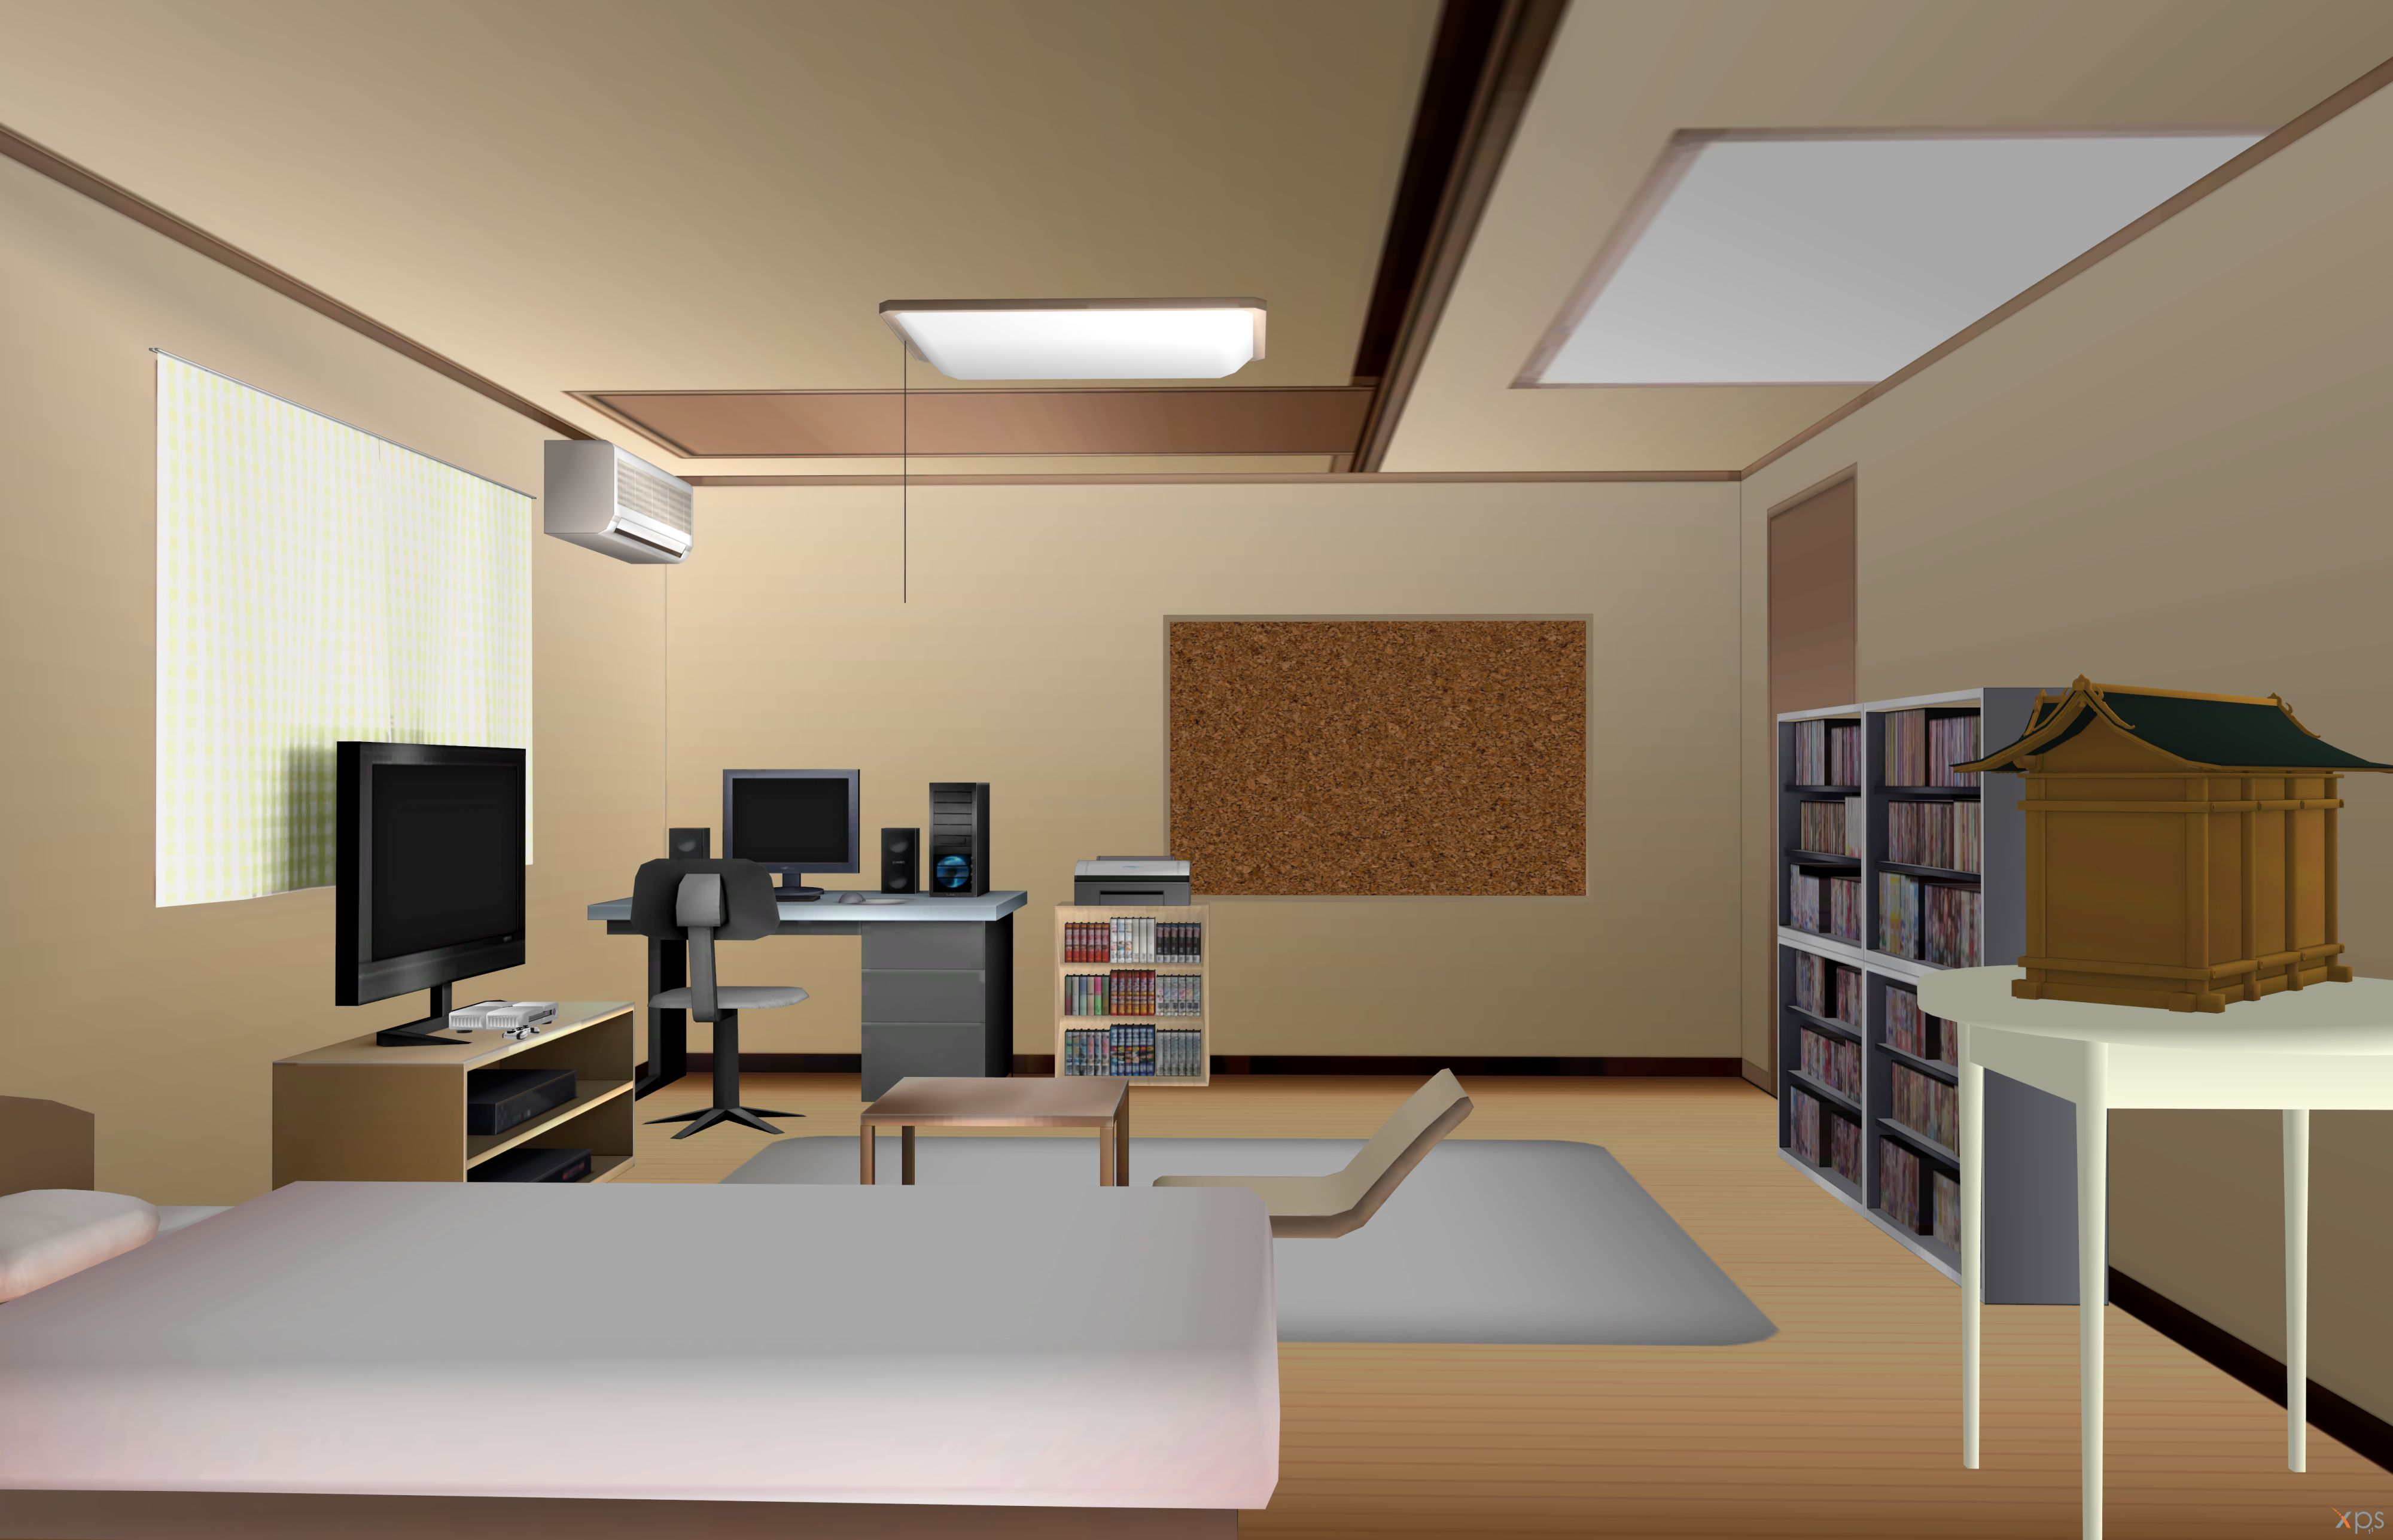 39 Yandere Simulator 39 Yandere Chan 39 S Room Xps Only By